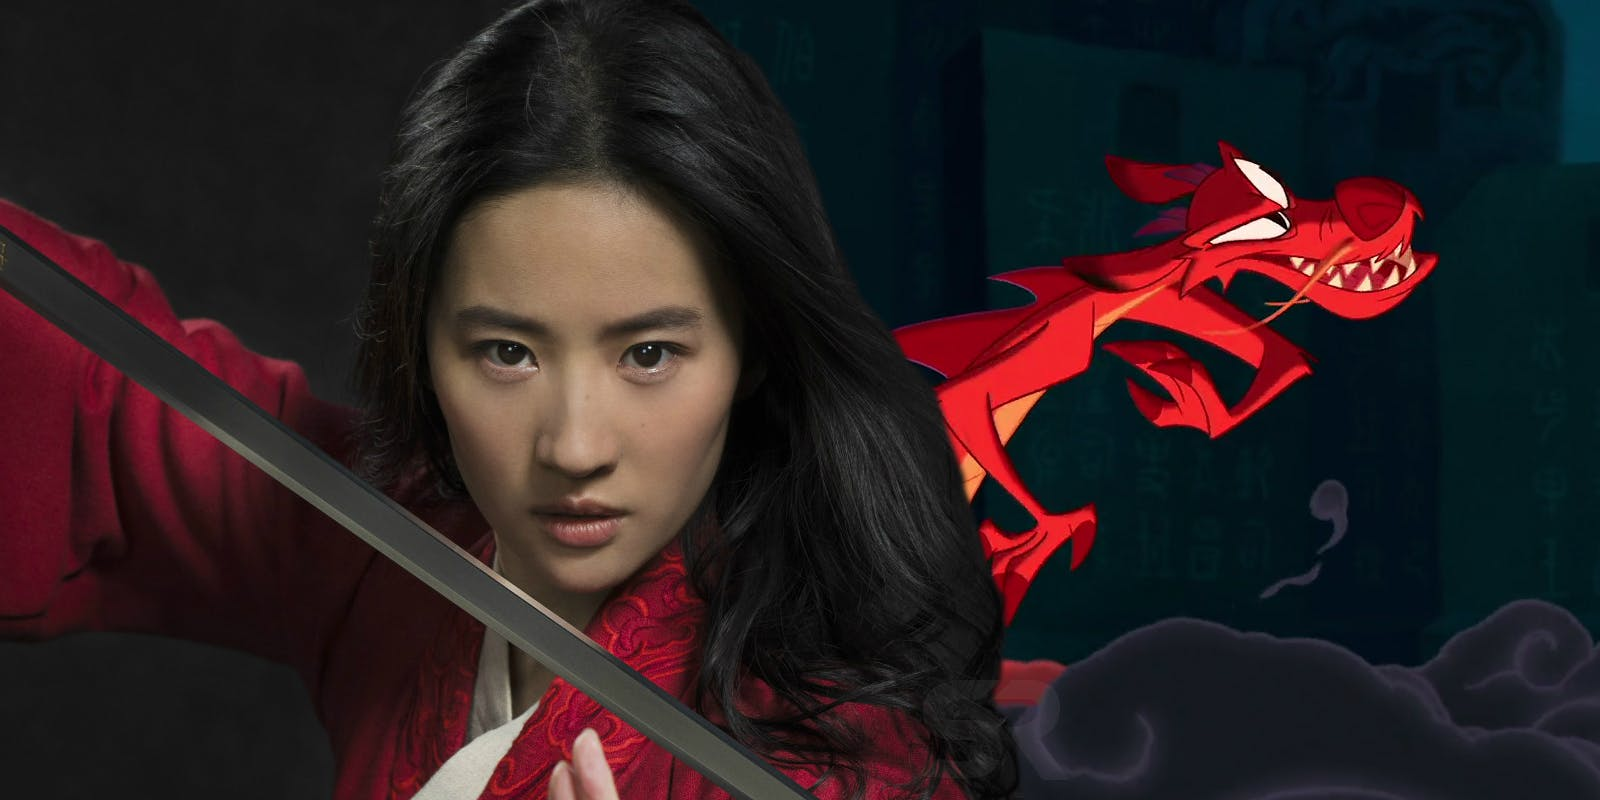 <h1>Mulan is affected by coronavirus</h1><h2>Disney premiere may be delayed</h2>